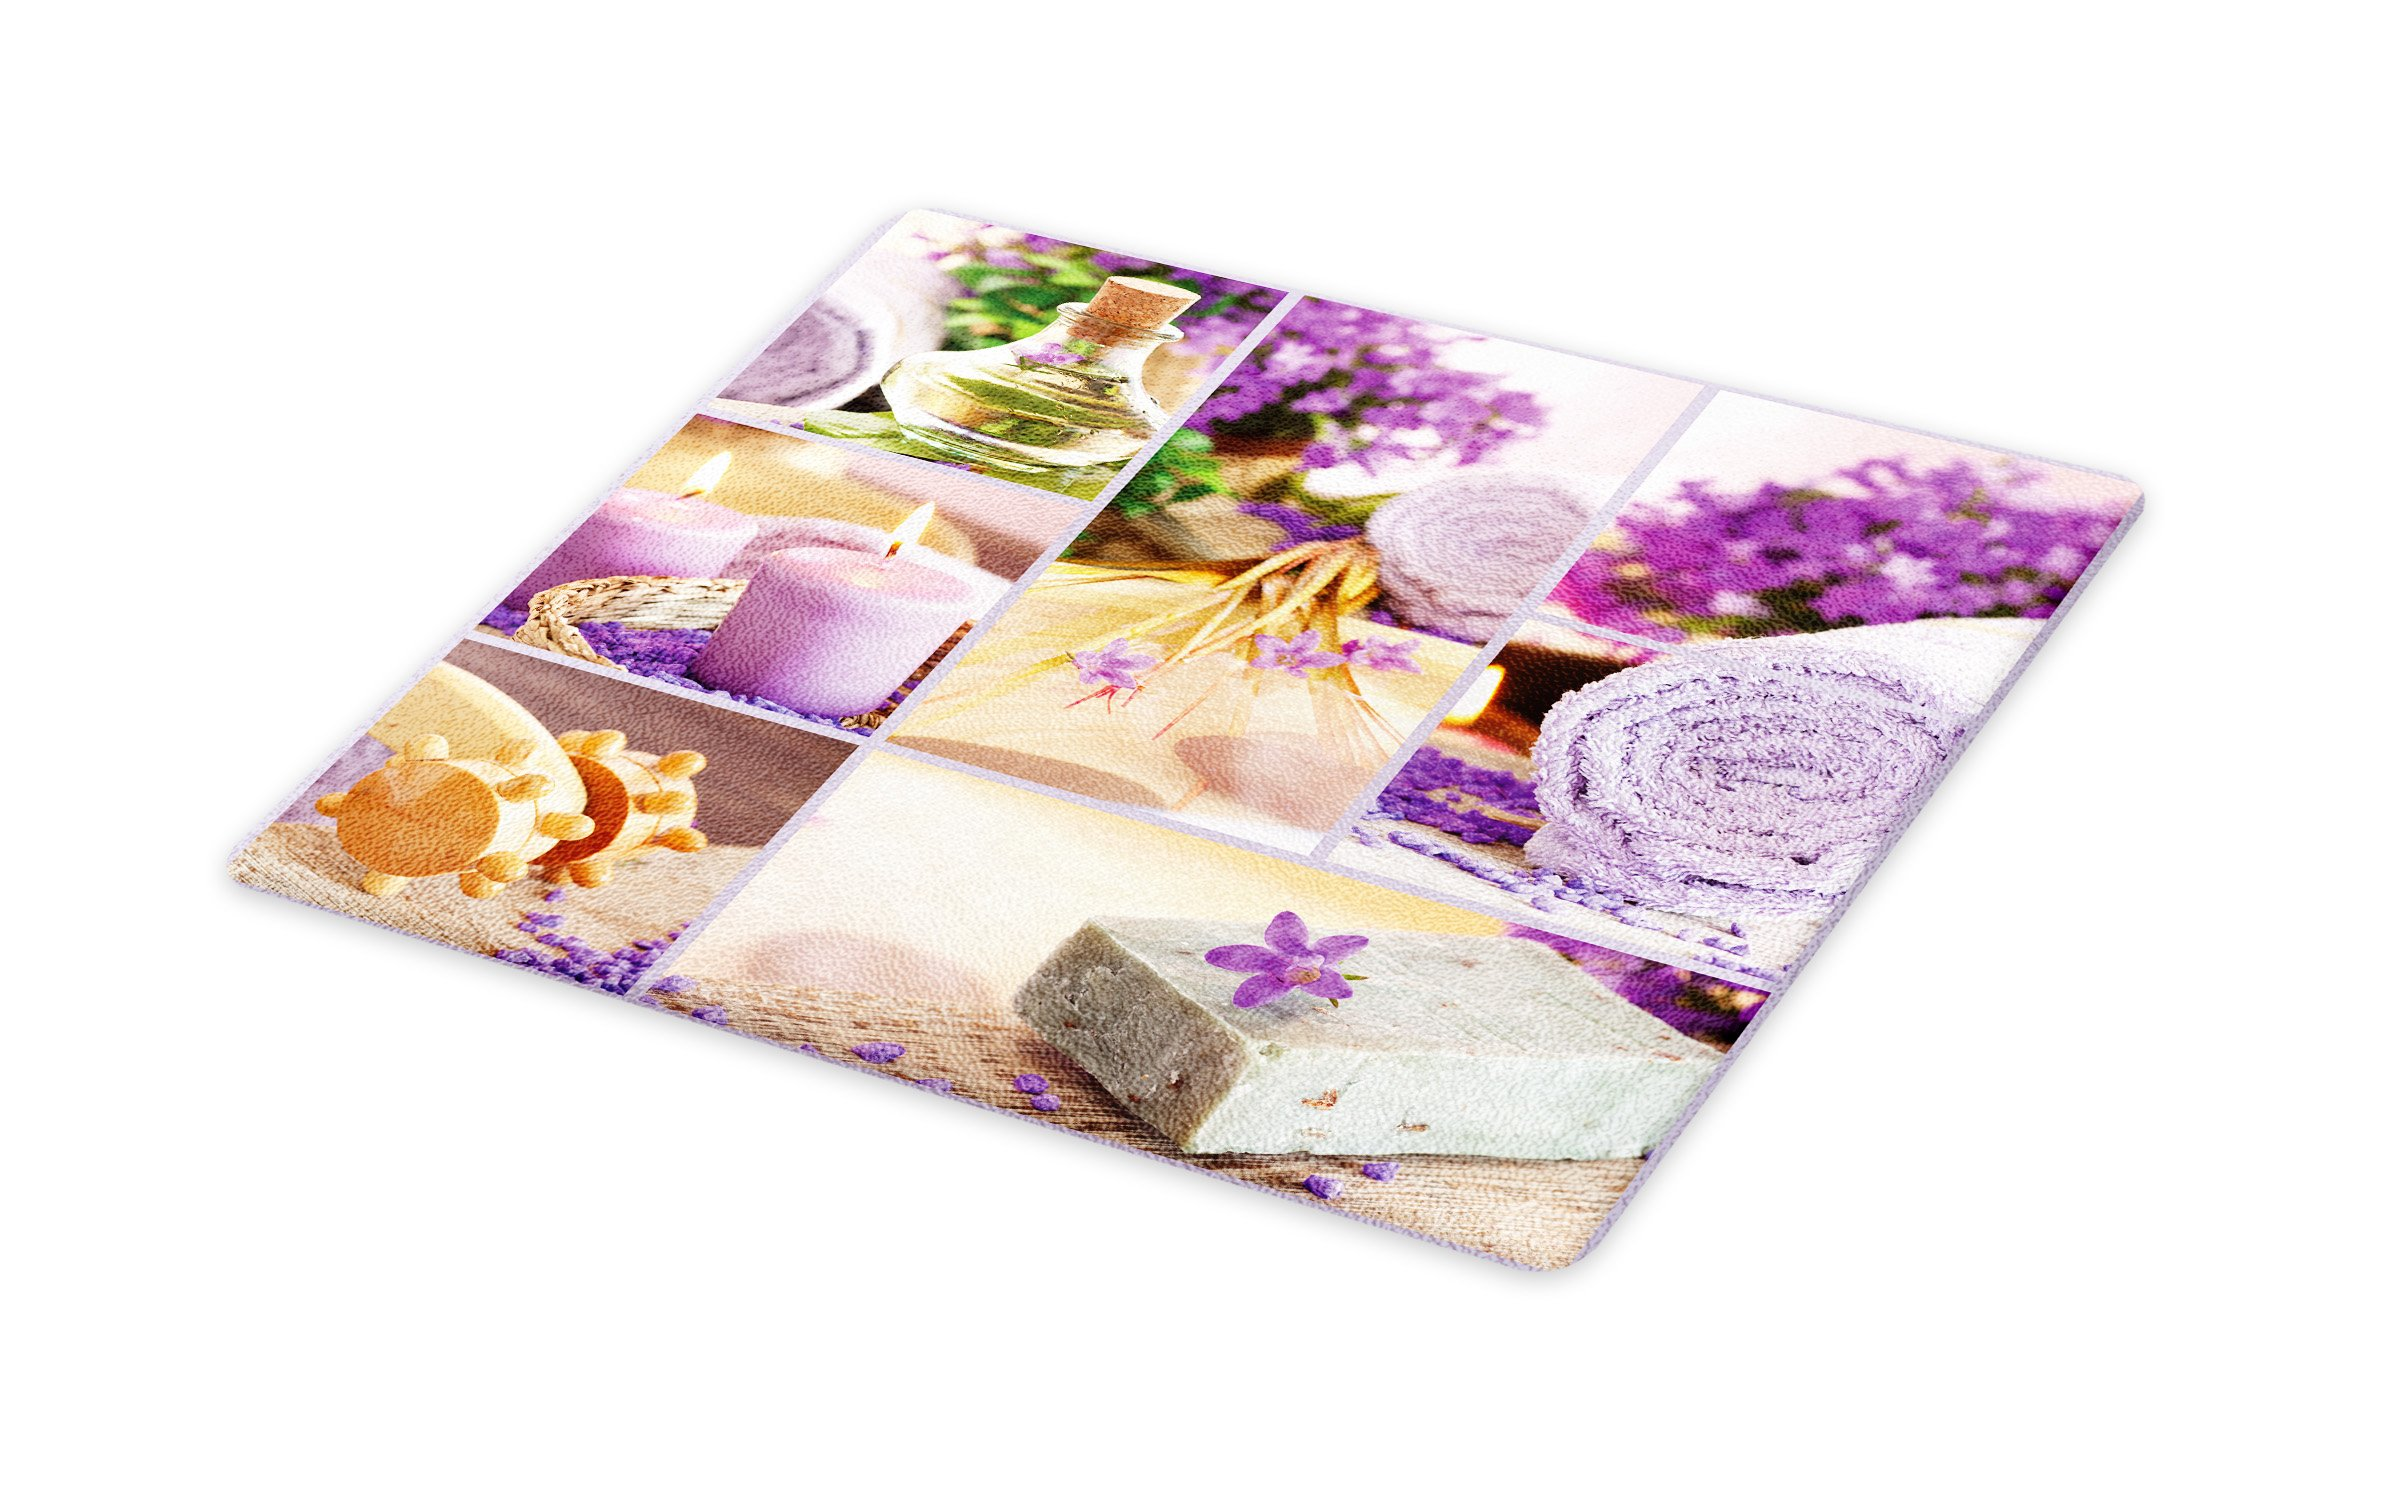 Lunarable Spa Cutting Board, Lavender Themed Relaxing Joyful Spa Day with Aromatherapy Oils Candles Relaxation, Decorative Tempered Glass Cutting and Serving Board, Small Size, Purple and White